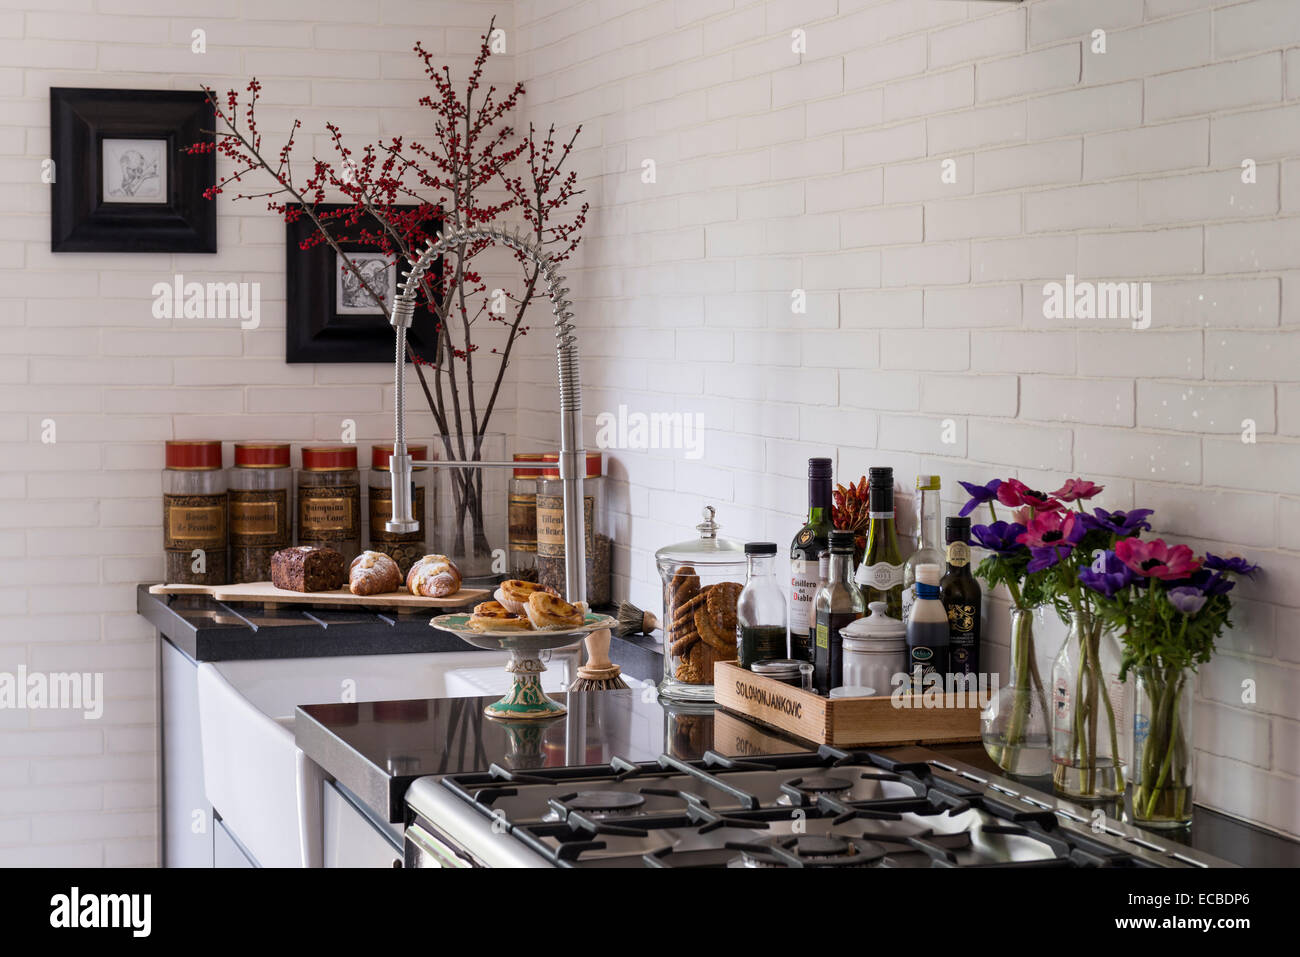 Franke tap and belfast sink in kitchen with Swedish wall tiles - Stock Image